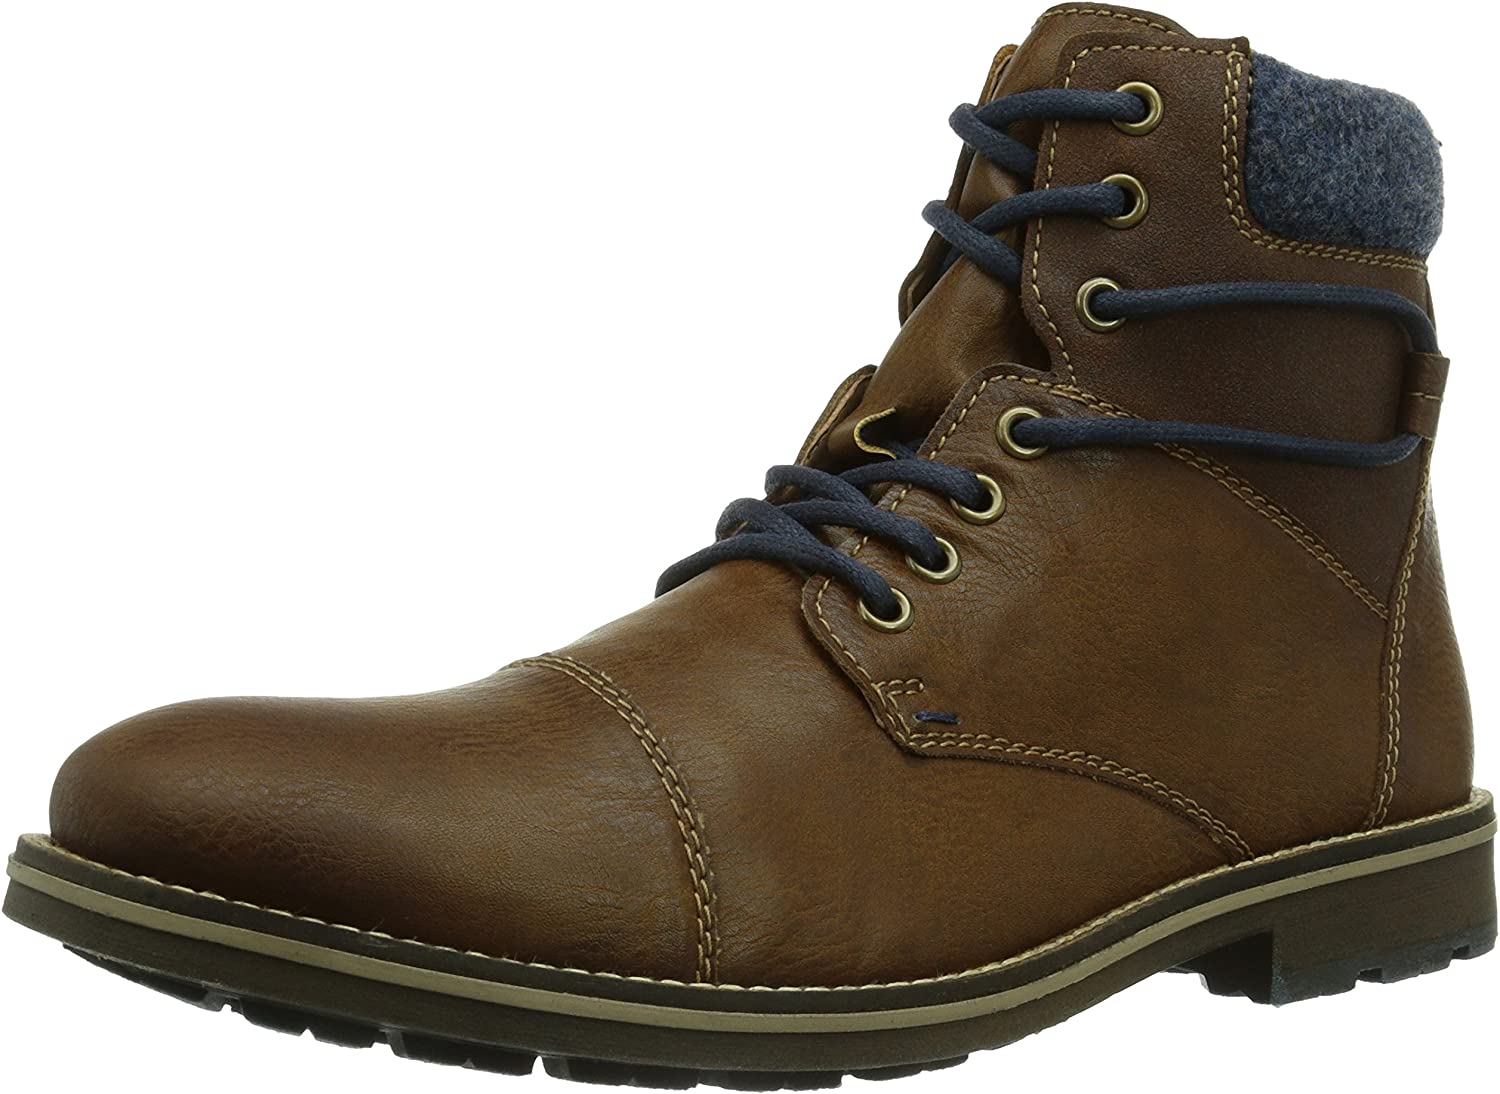 Rieker F1532-25, Men's Cold Lined Classic Boots Half Length